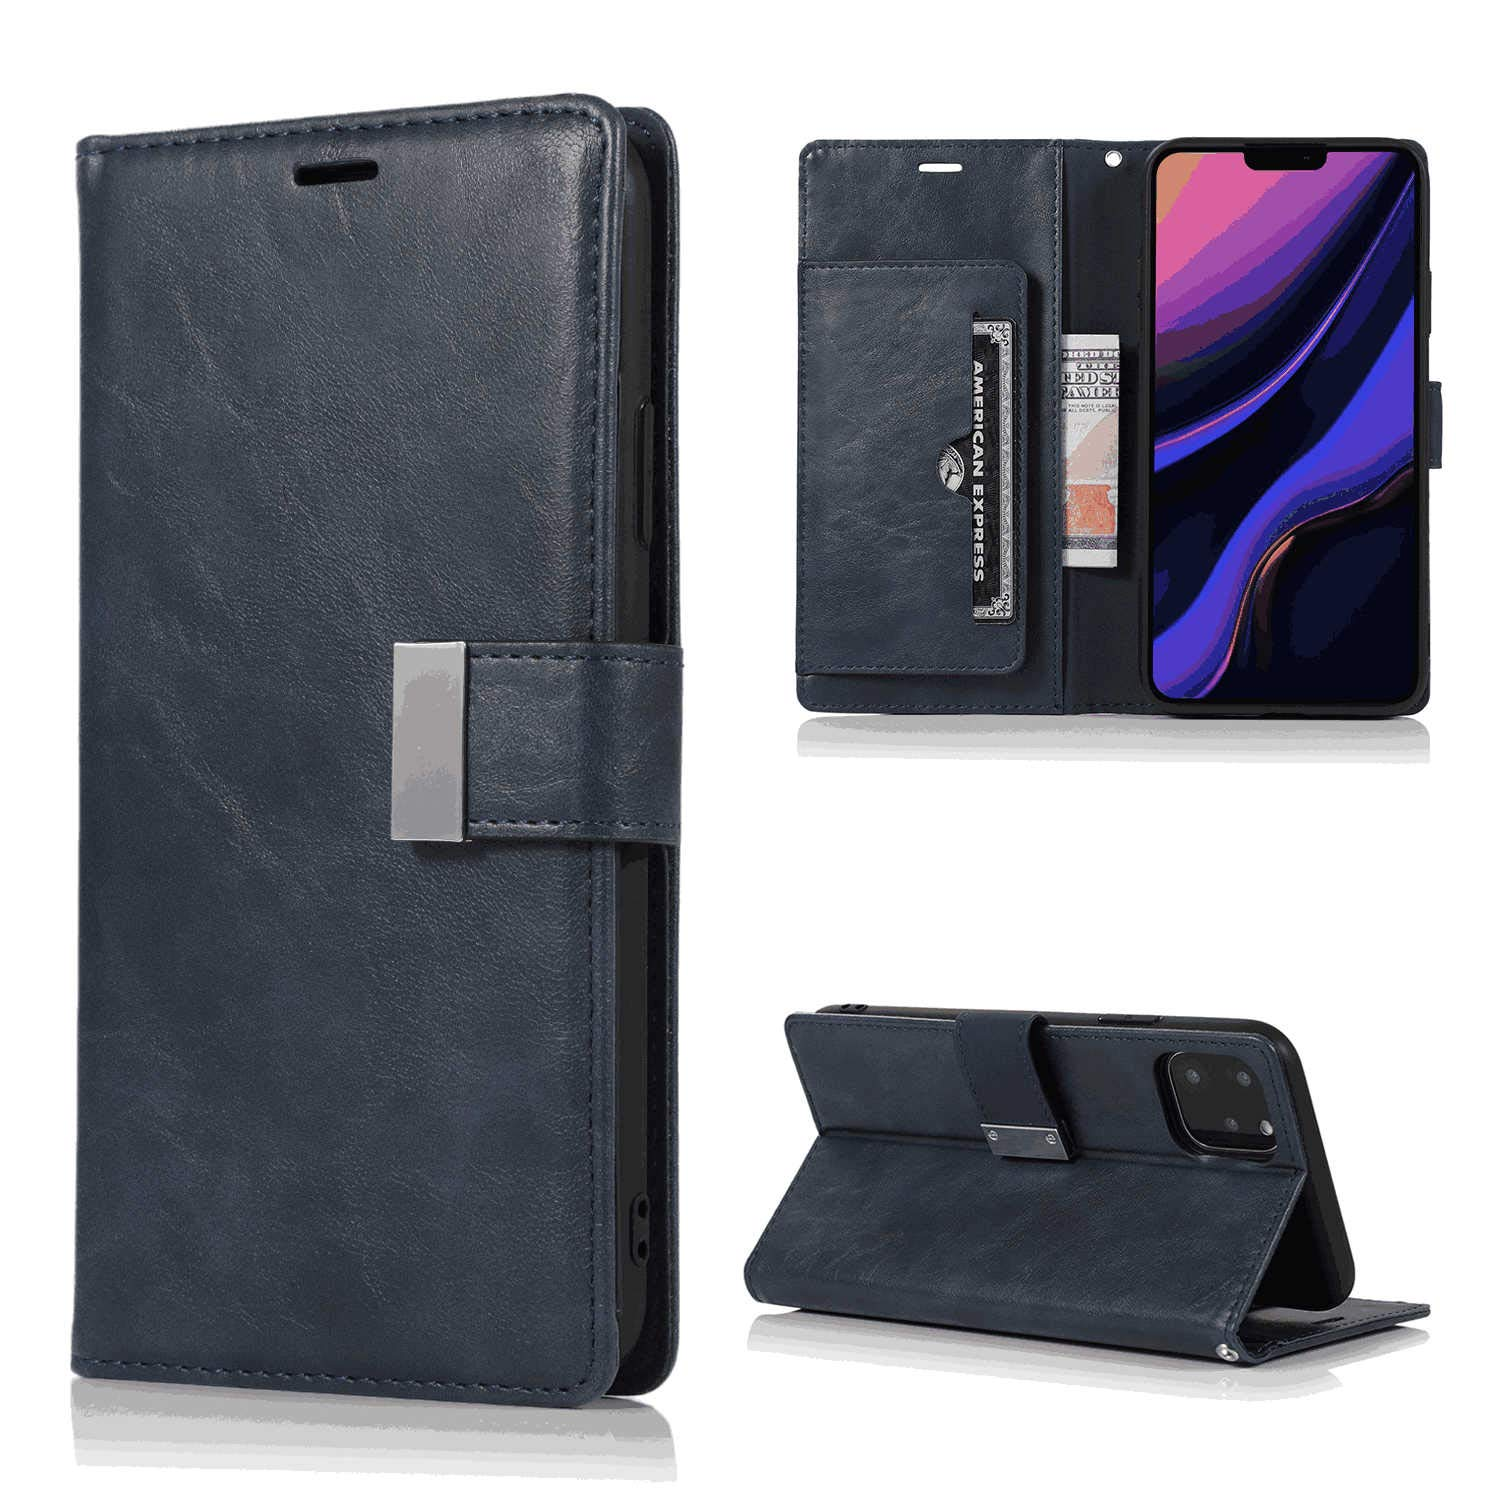 Brown Leather Flip Case Wallet for Samsung Galaxy S10 Plus Stylish Cover Compatible with Samsung Galaxy S10 Plus